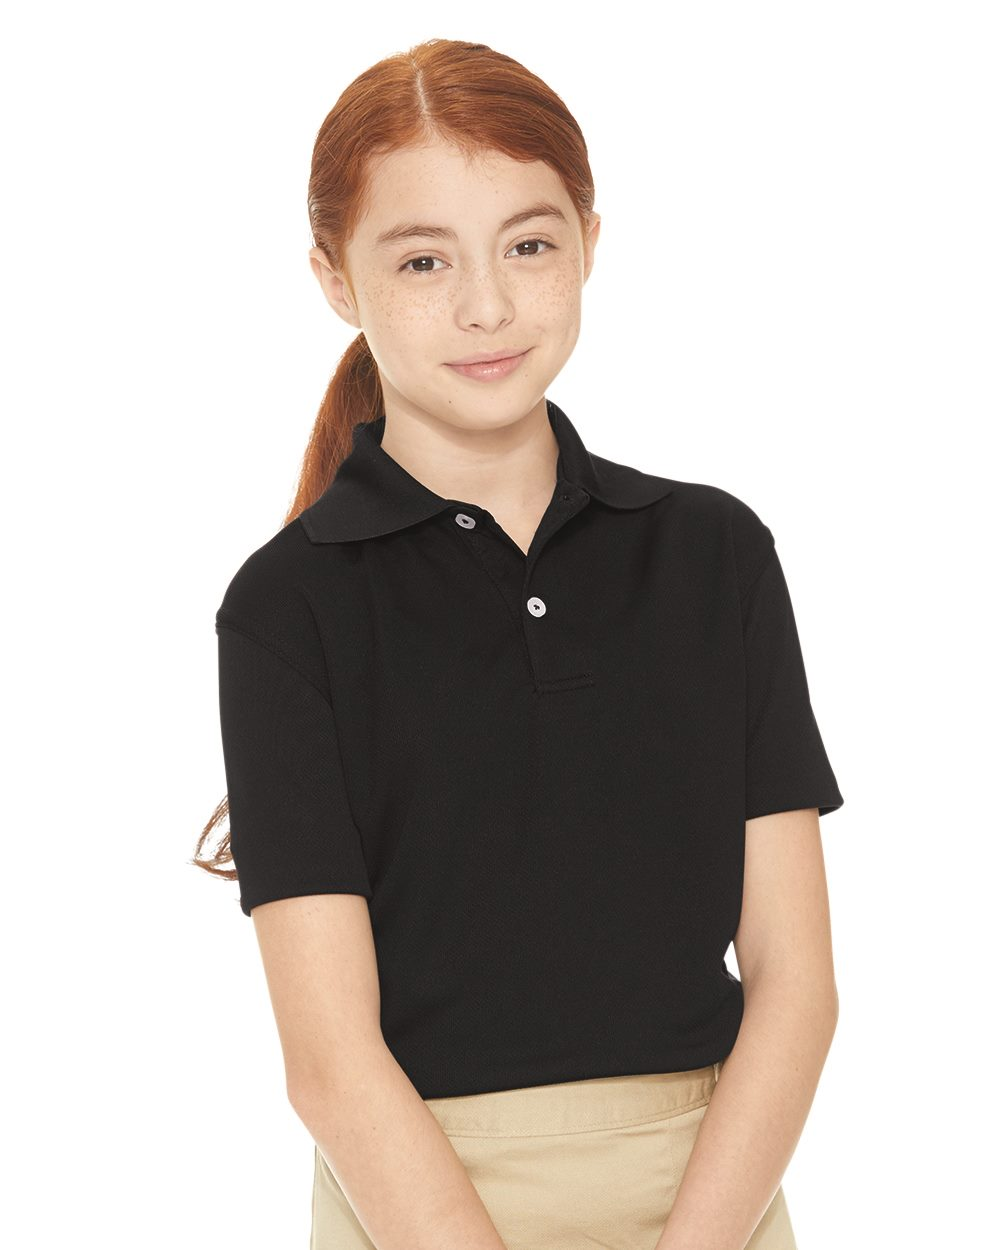 FeatherLite 4469 - Youth Moisture Free Mesh Sport Shirt